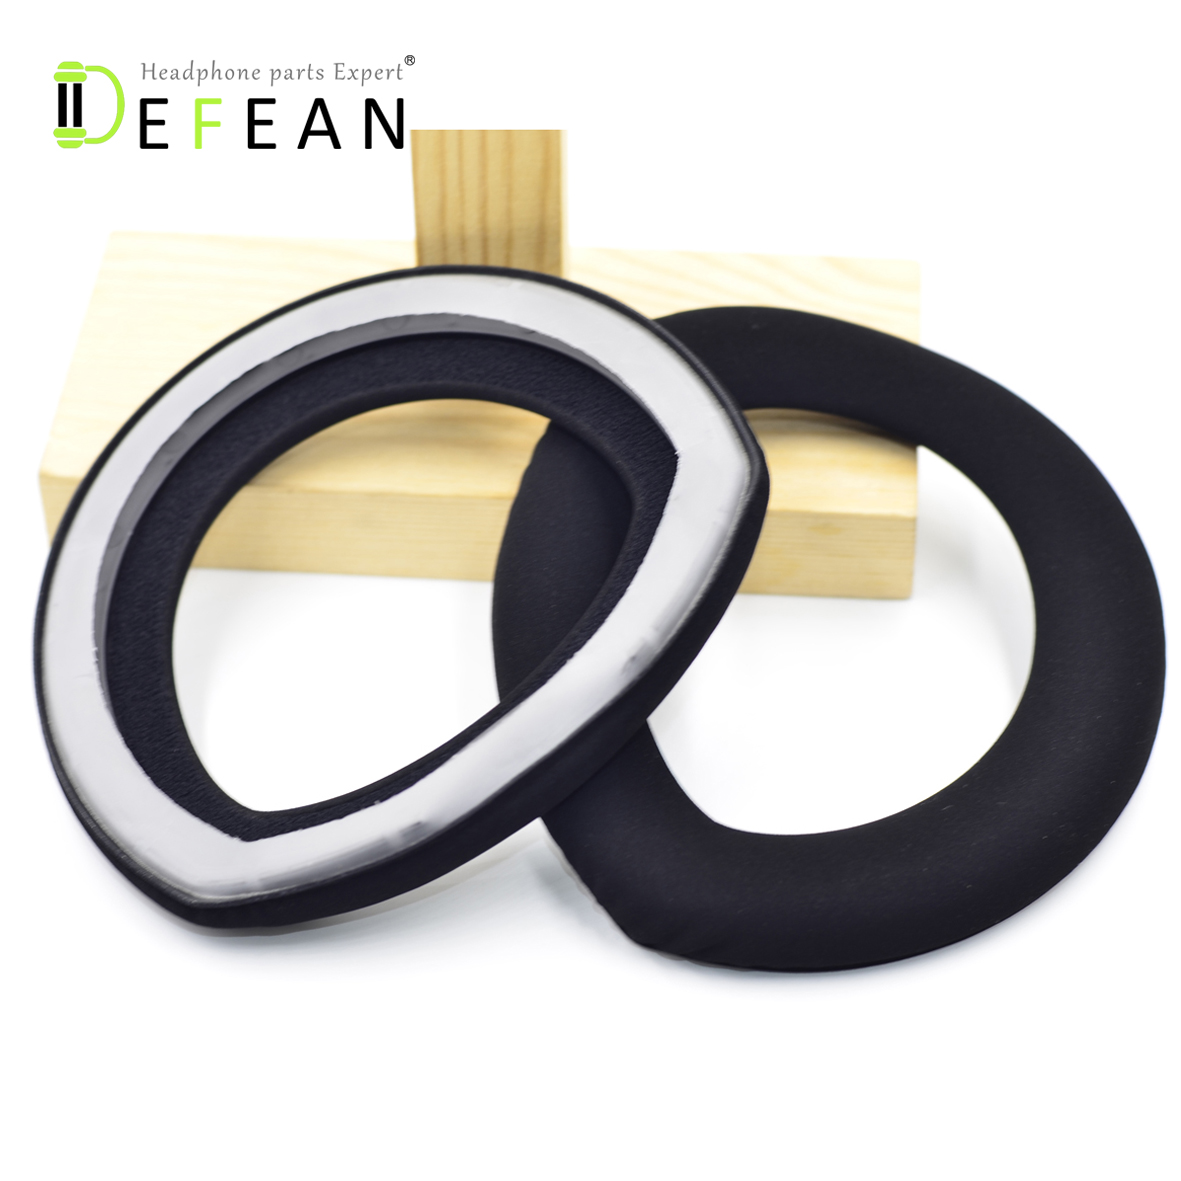 Defean Replacement Ear Pad Foam Cushion For Sennheiser HD800 HD800S H 800 S Headphones-in Earphone Accessories from Consumer Electronics